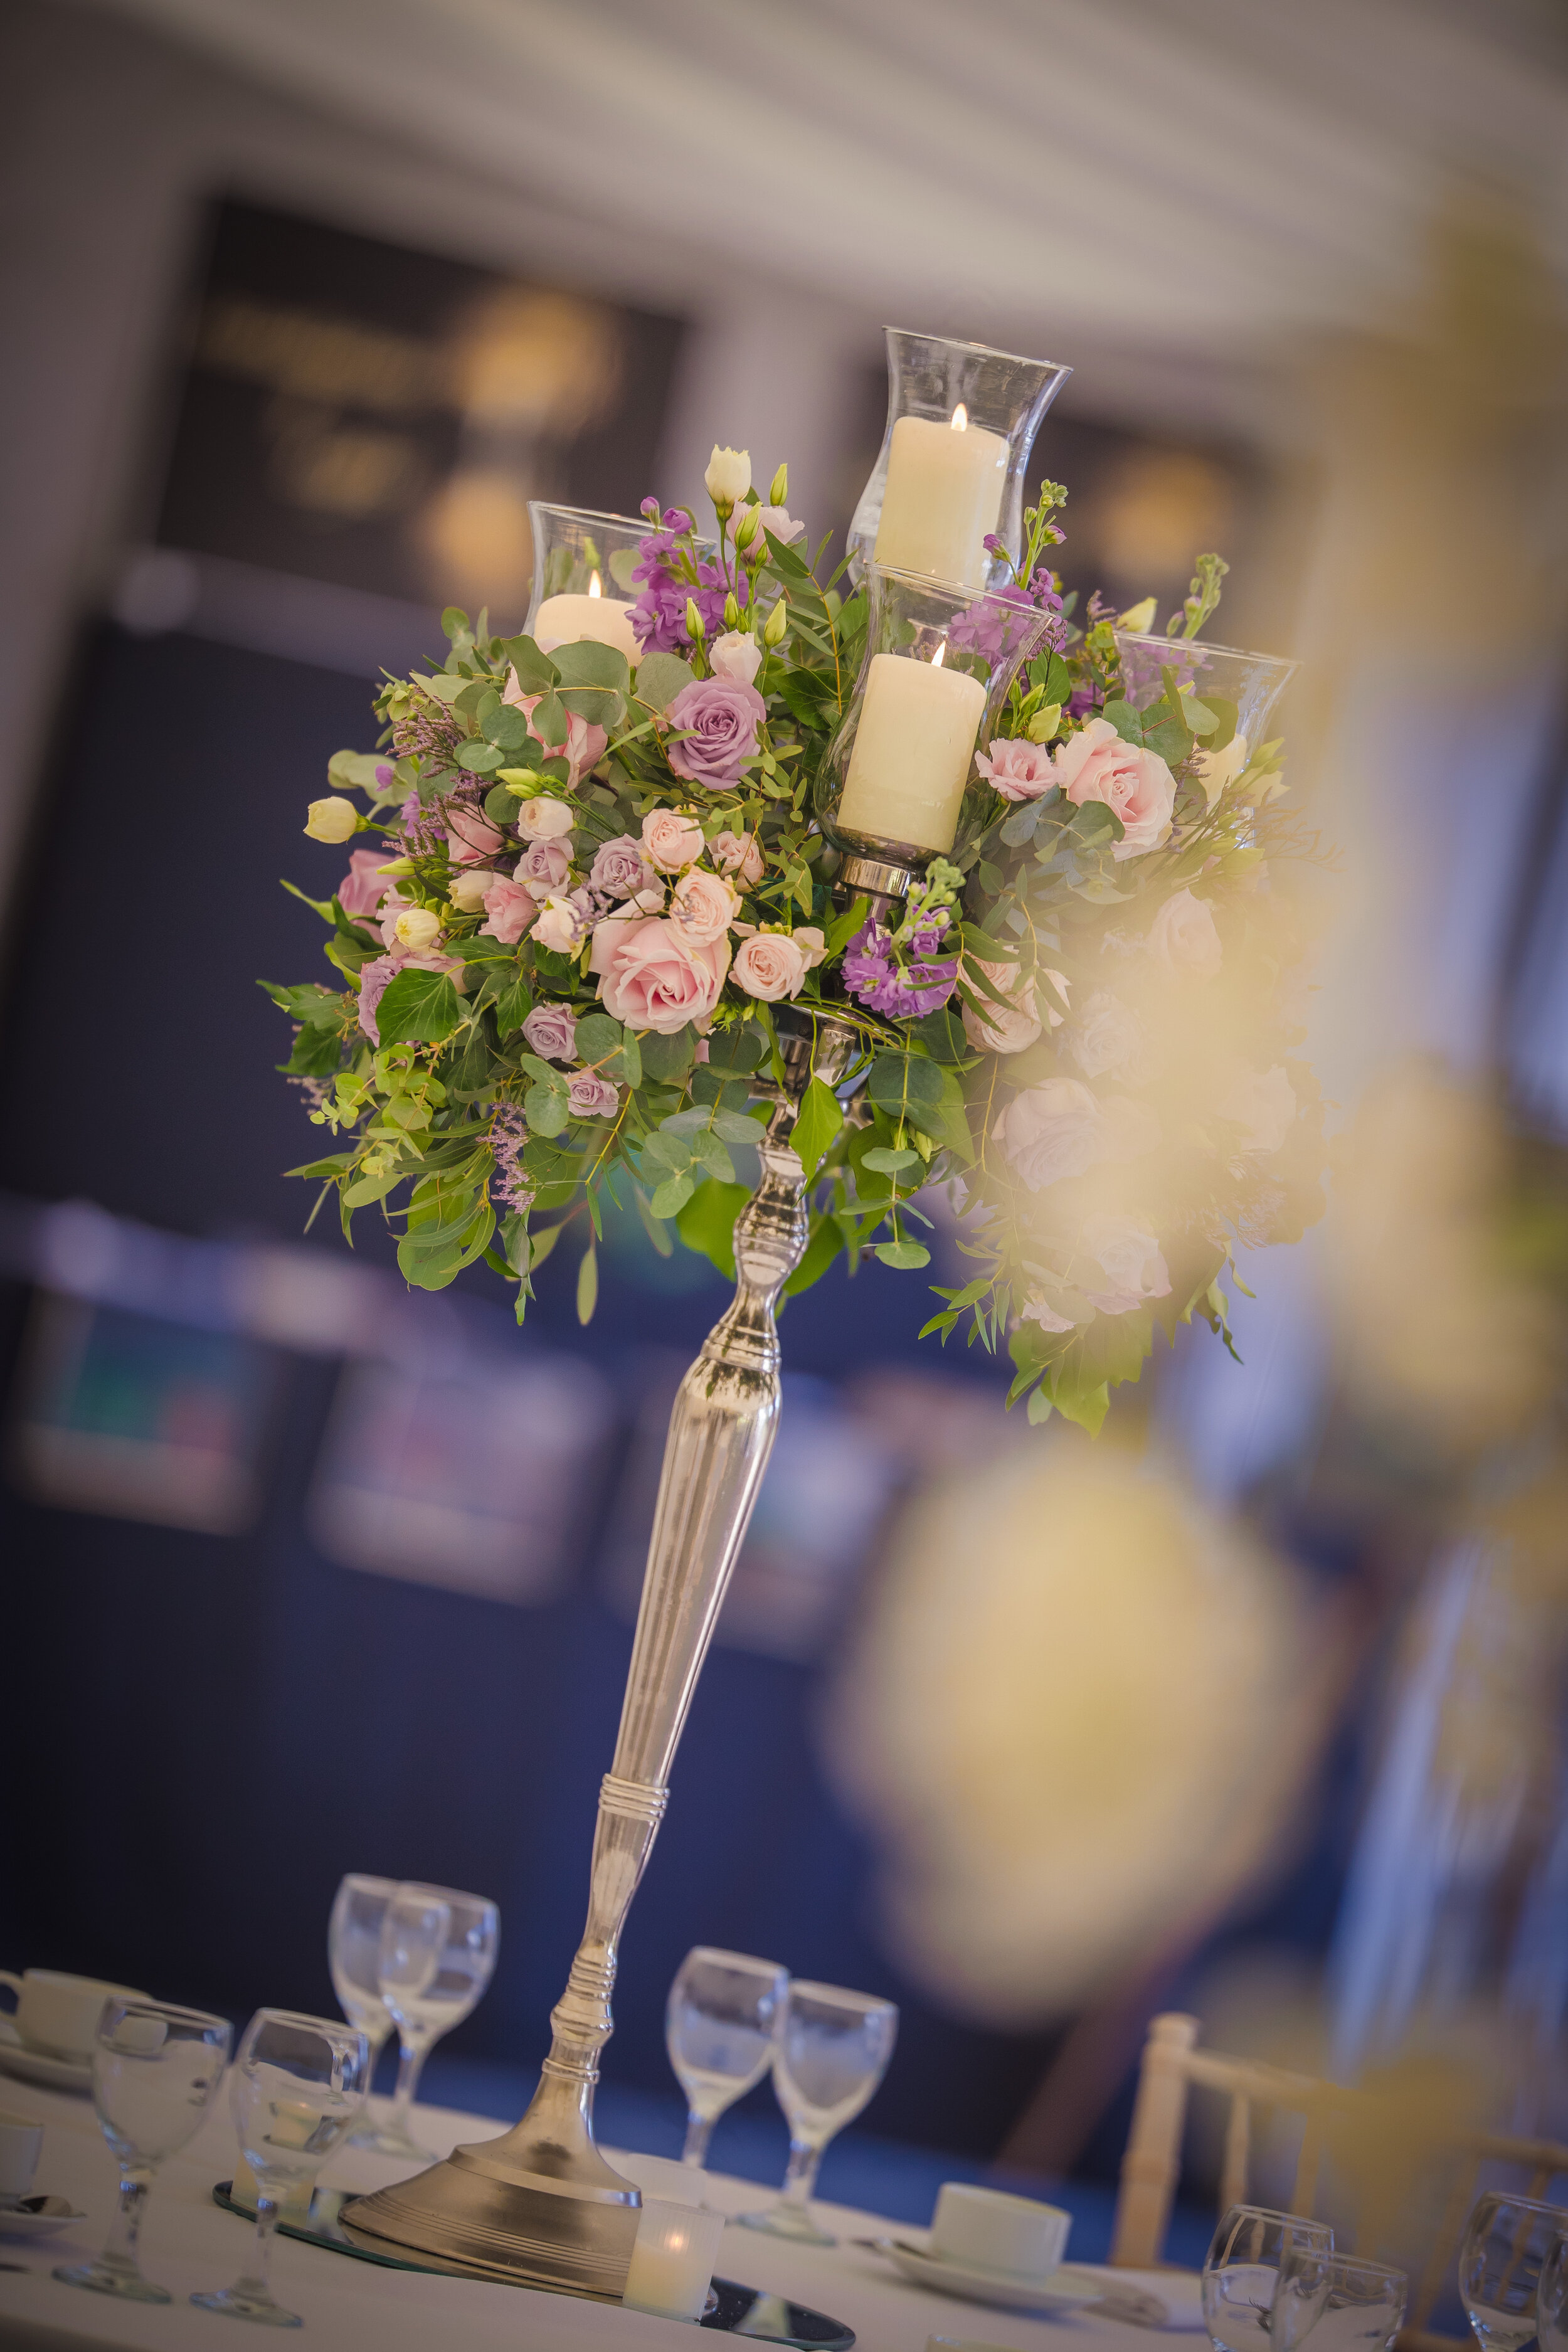 Florals by Tortraits Floral design. Image by Kris Dickson Photography